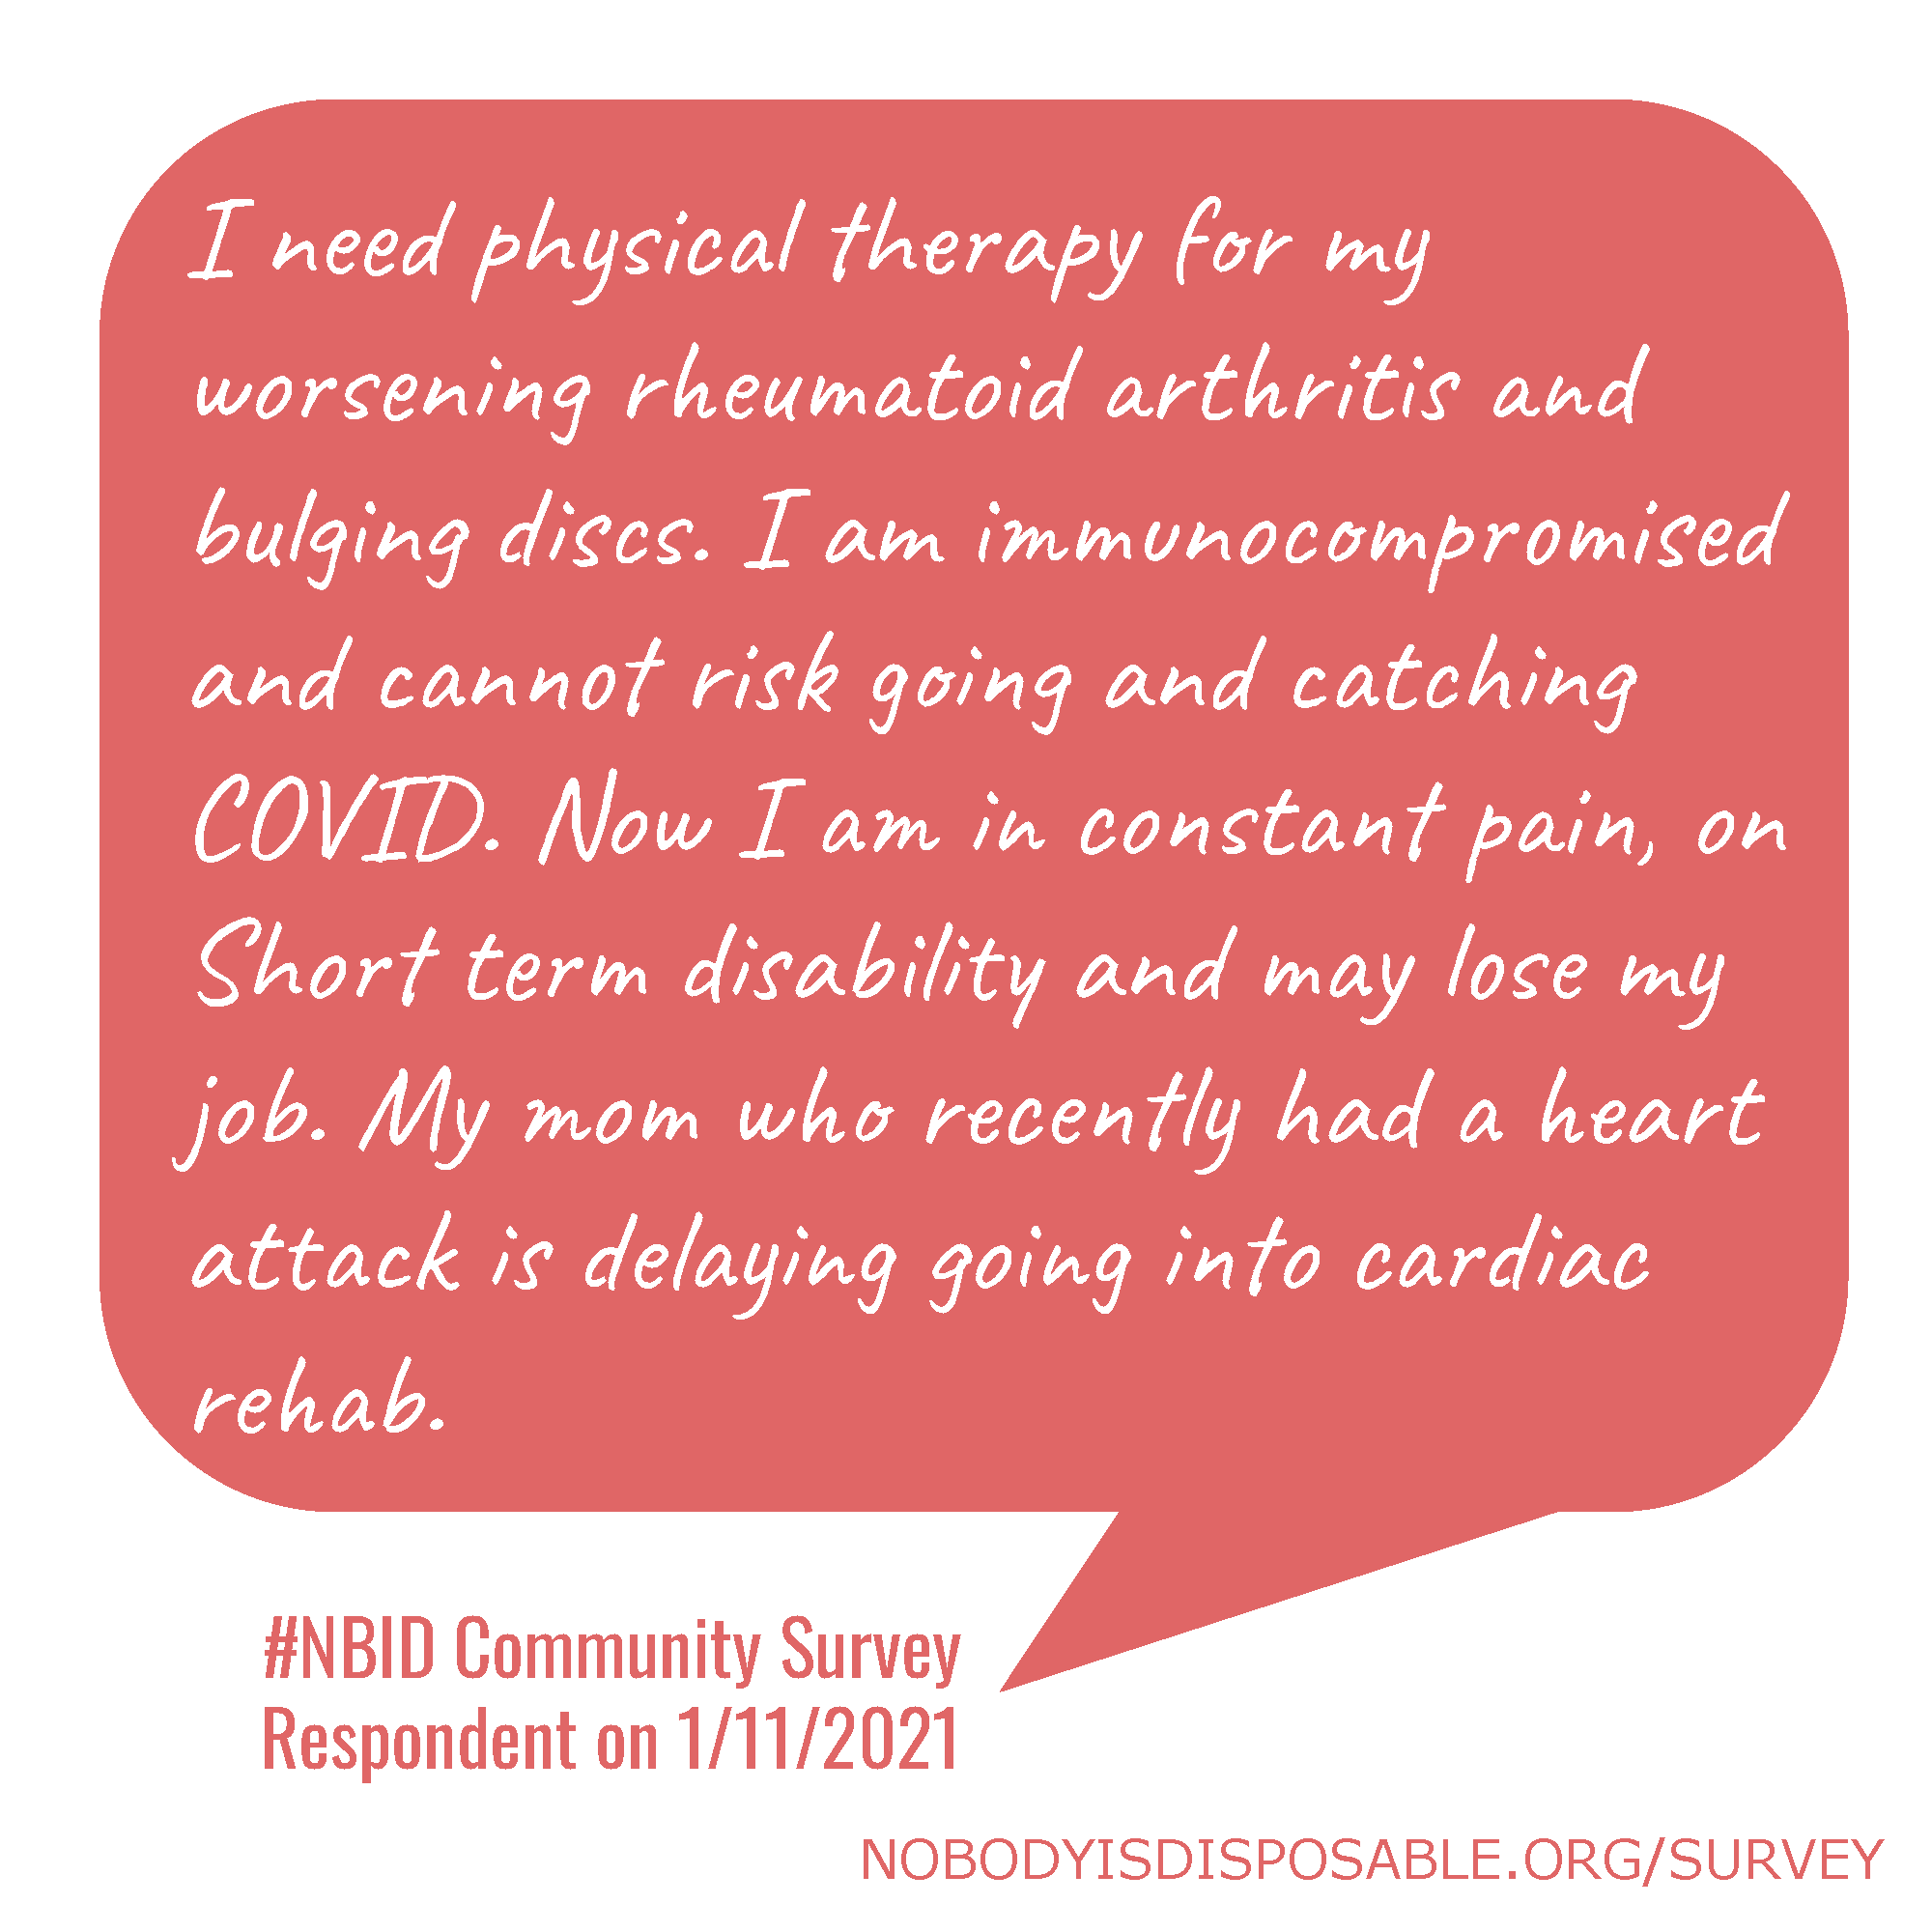 I need physical therapy for my worsening rheumatoid arthritis and bulging discs. I am immunocompromised and cannot risk going and catching COVID. Now I am in constant pain, on Short term disability and may lose my job. My mom who recently had a heart attack is delaying going into cardiac rehab. #NBID Community Survey Respondent on 1/11/2021